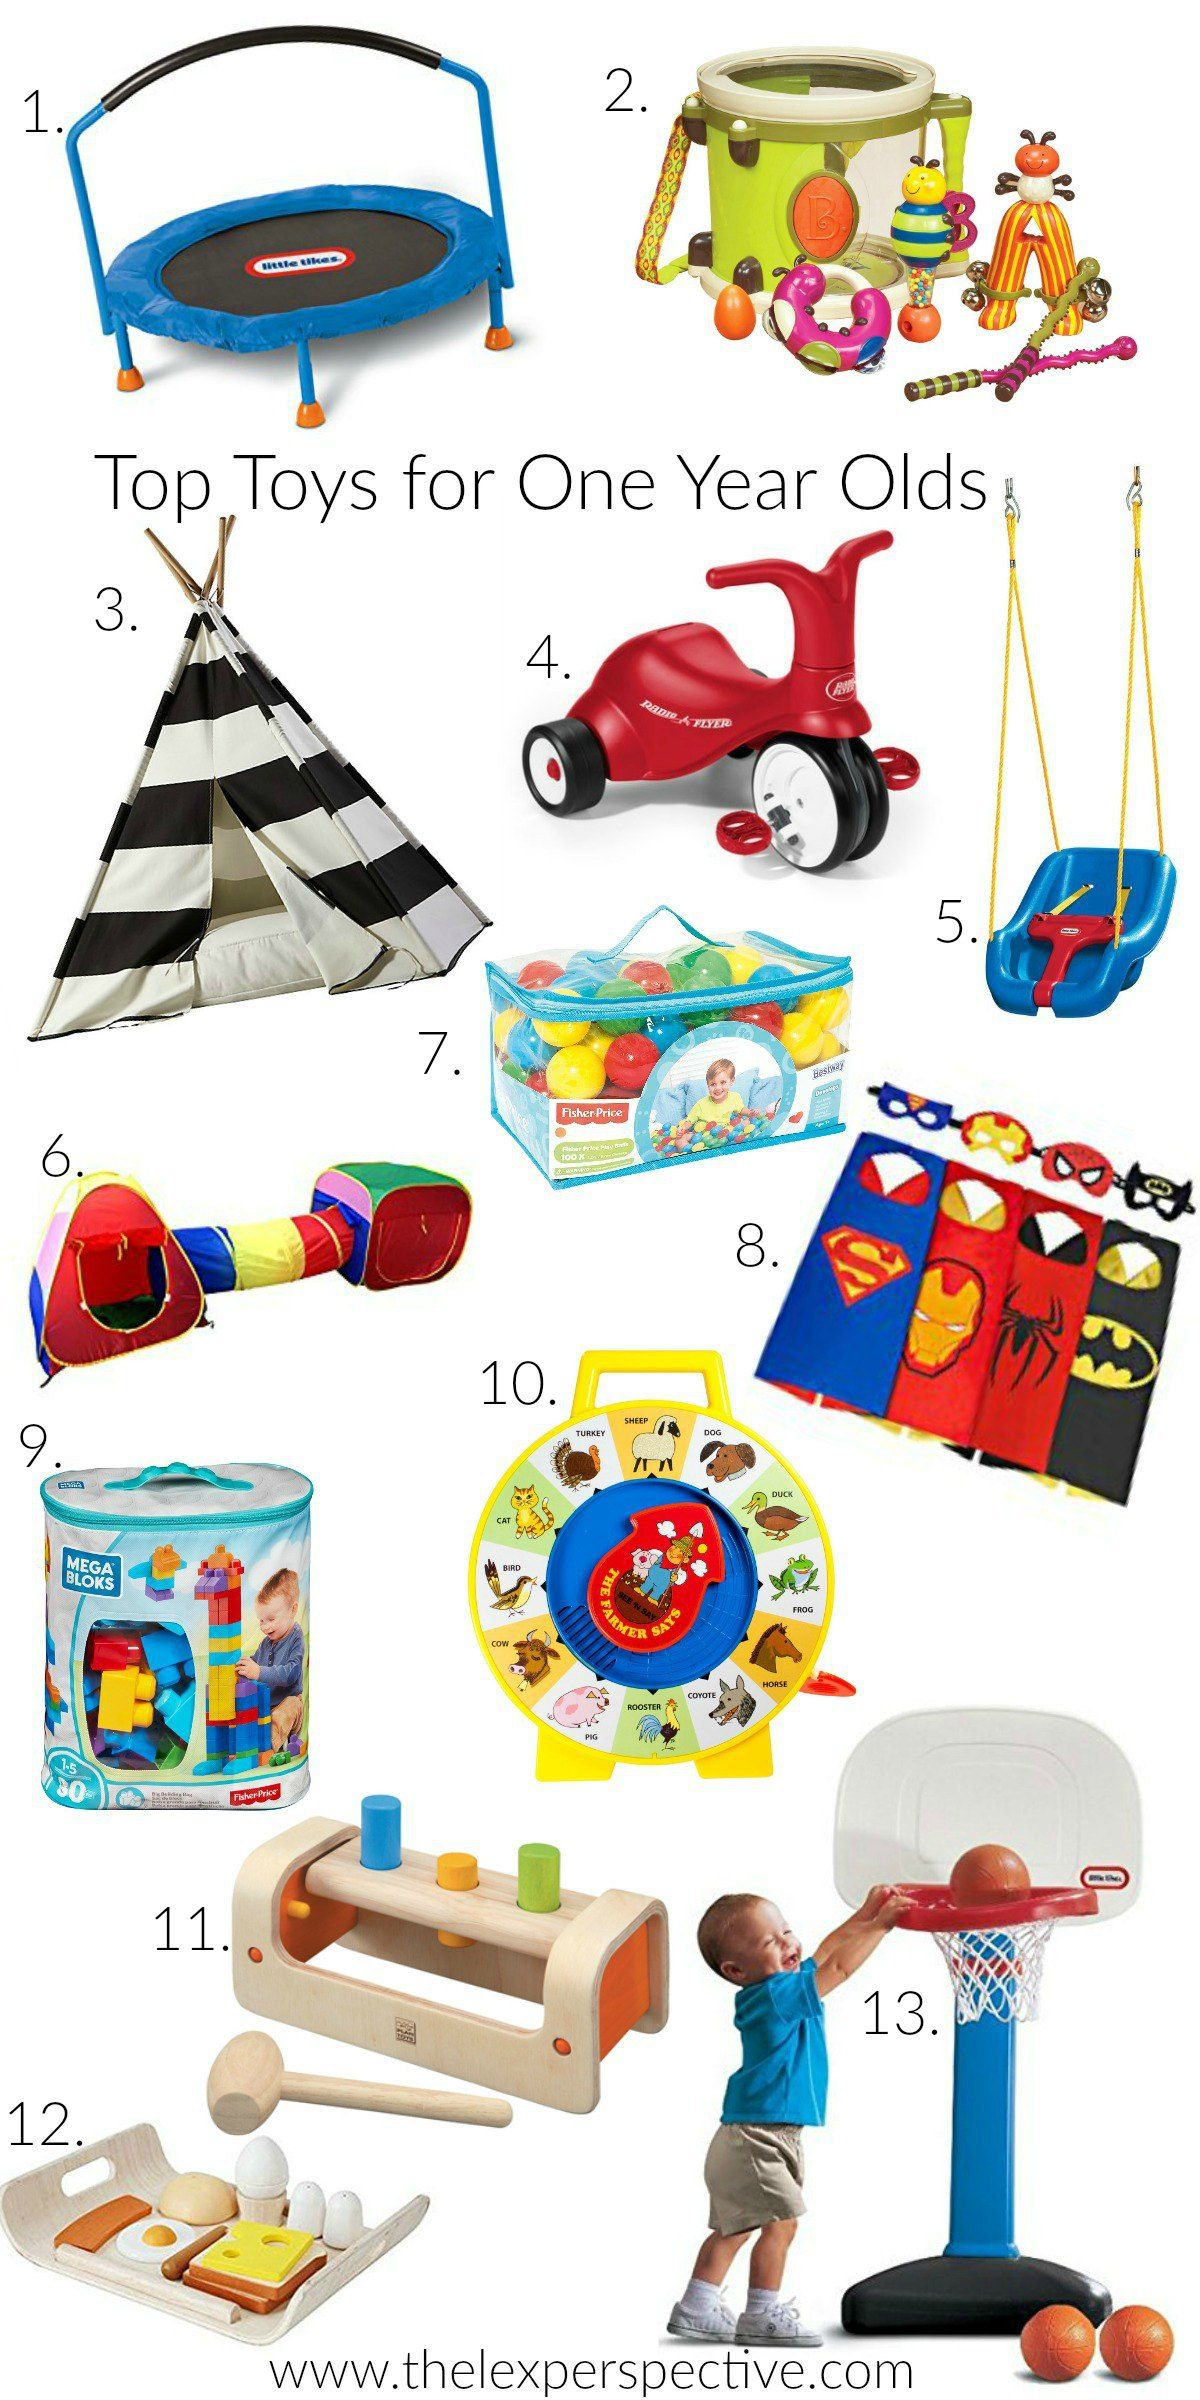 1st Birthday Gift Guide Top Toys for a e Year Old